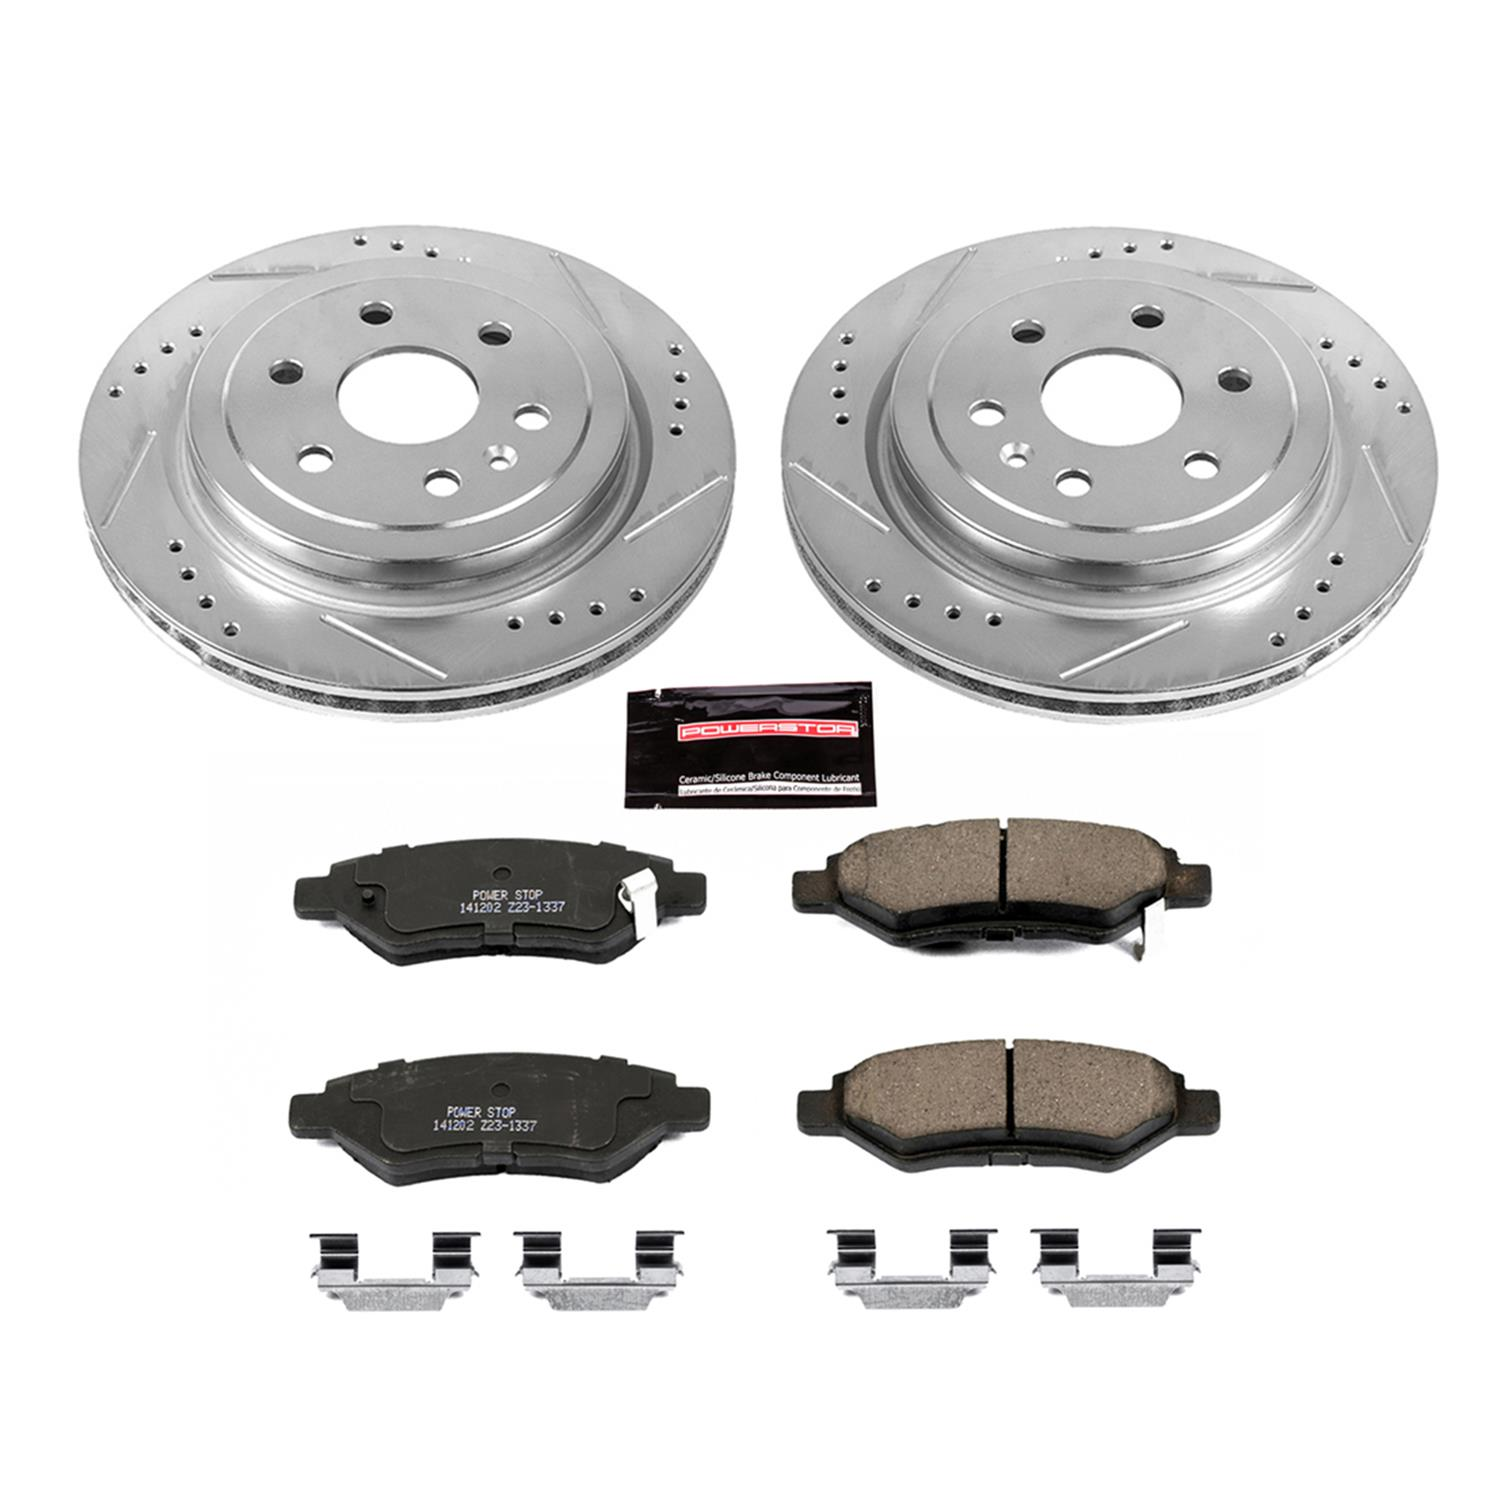 2010 2011 Cadillac SRX Disc Brake Rotors and Free Pads Rear